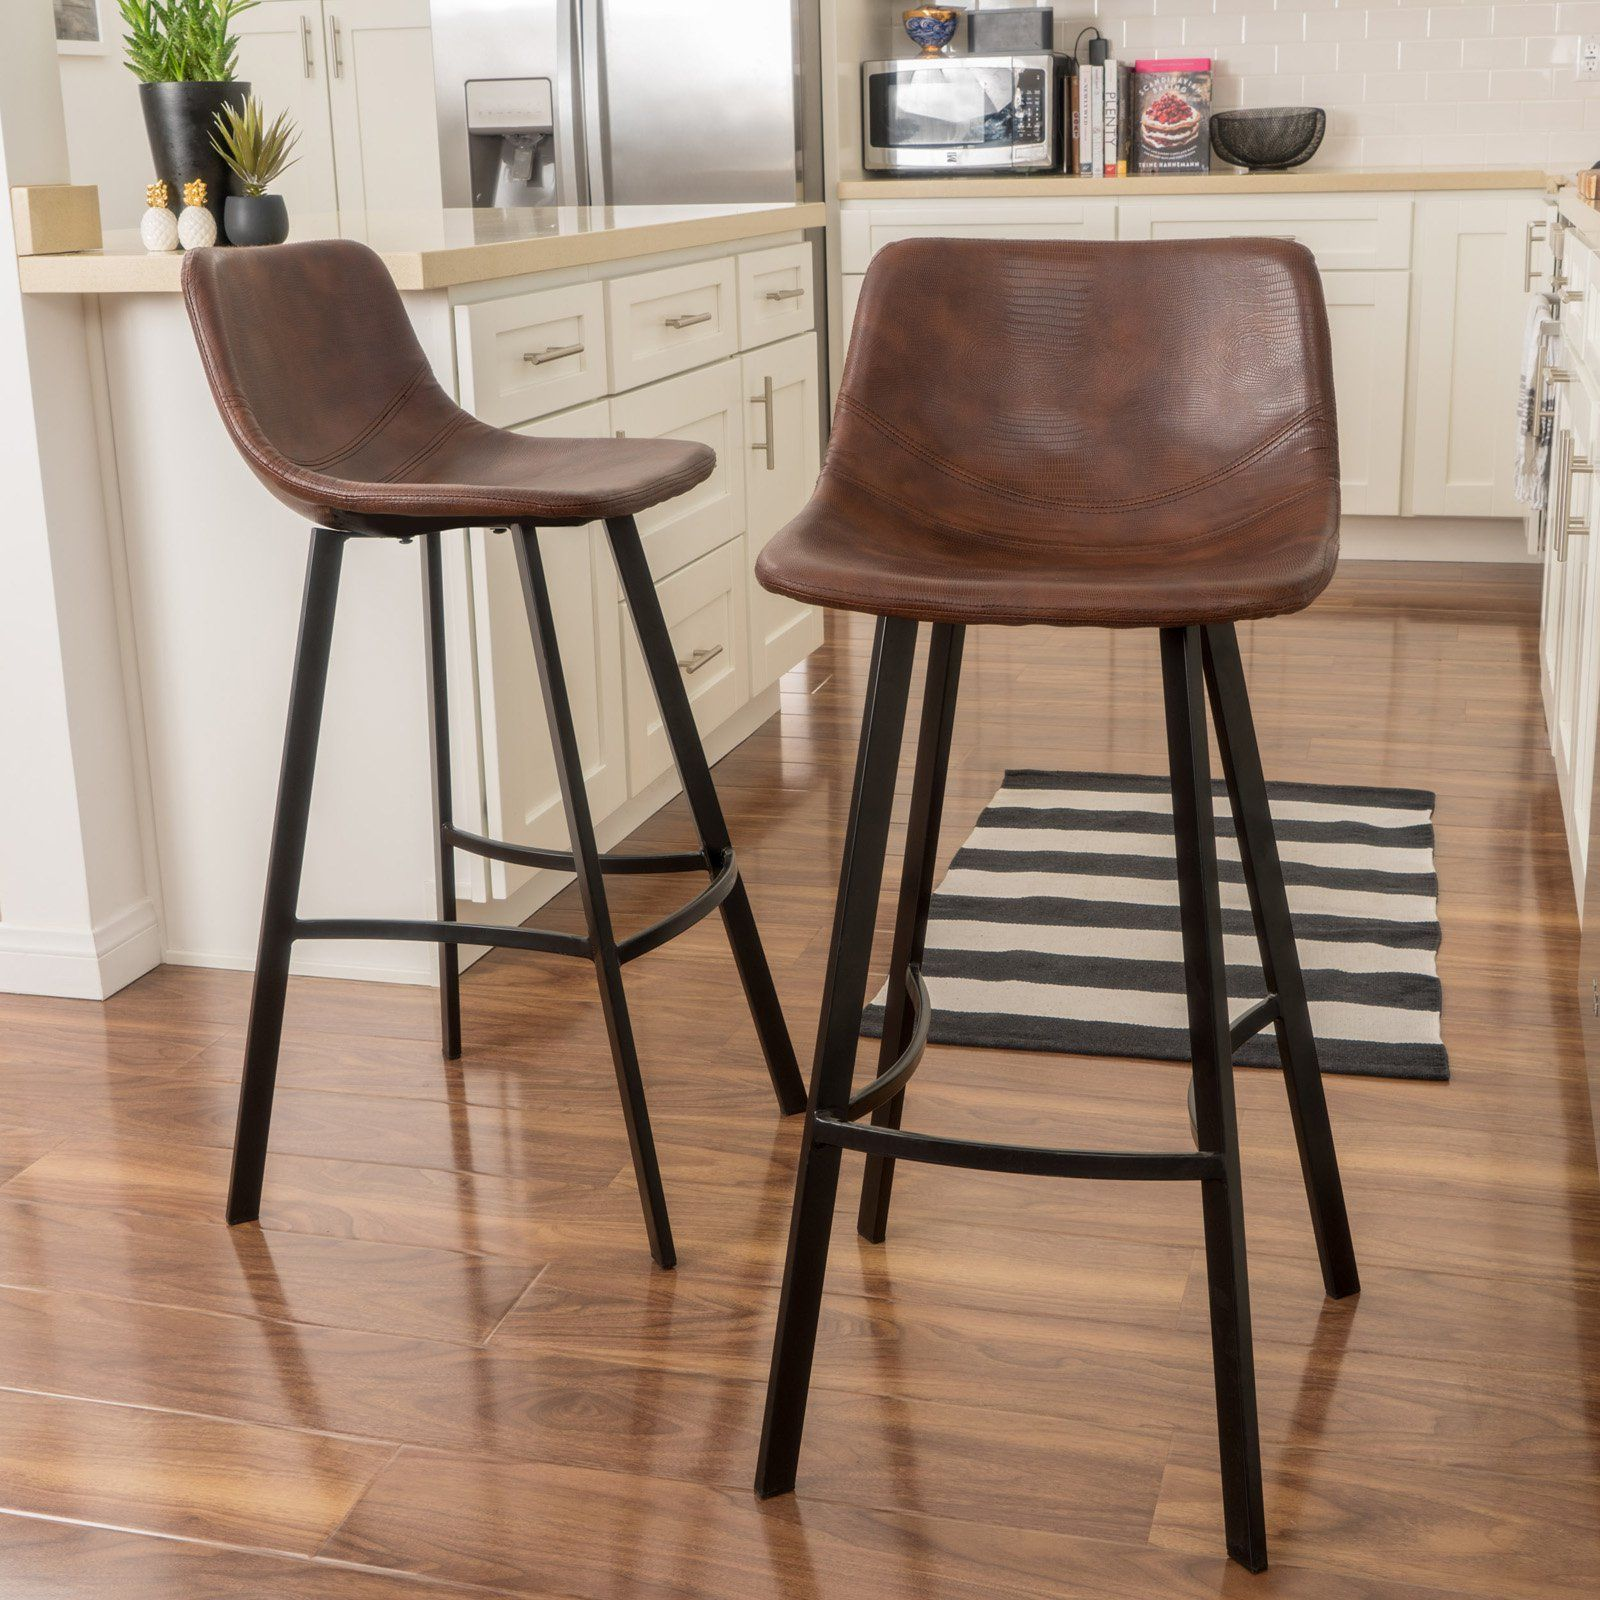 Best Selling Home Kameron Bar Stool - Set of 2 - 298406 | Products ...